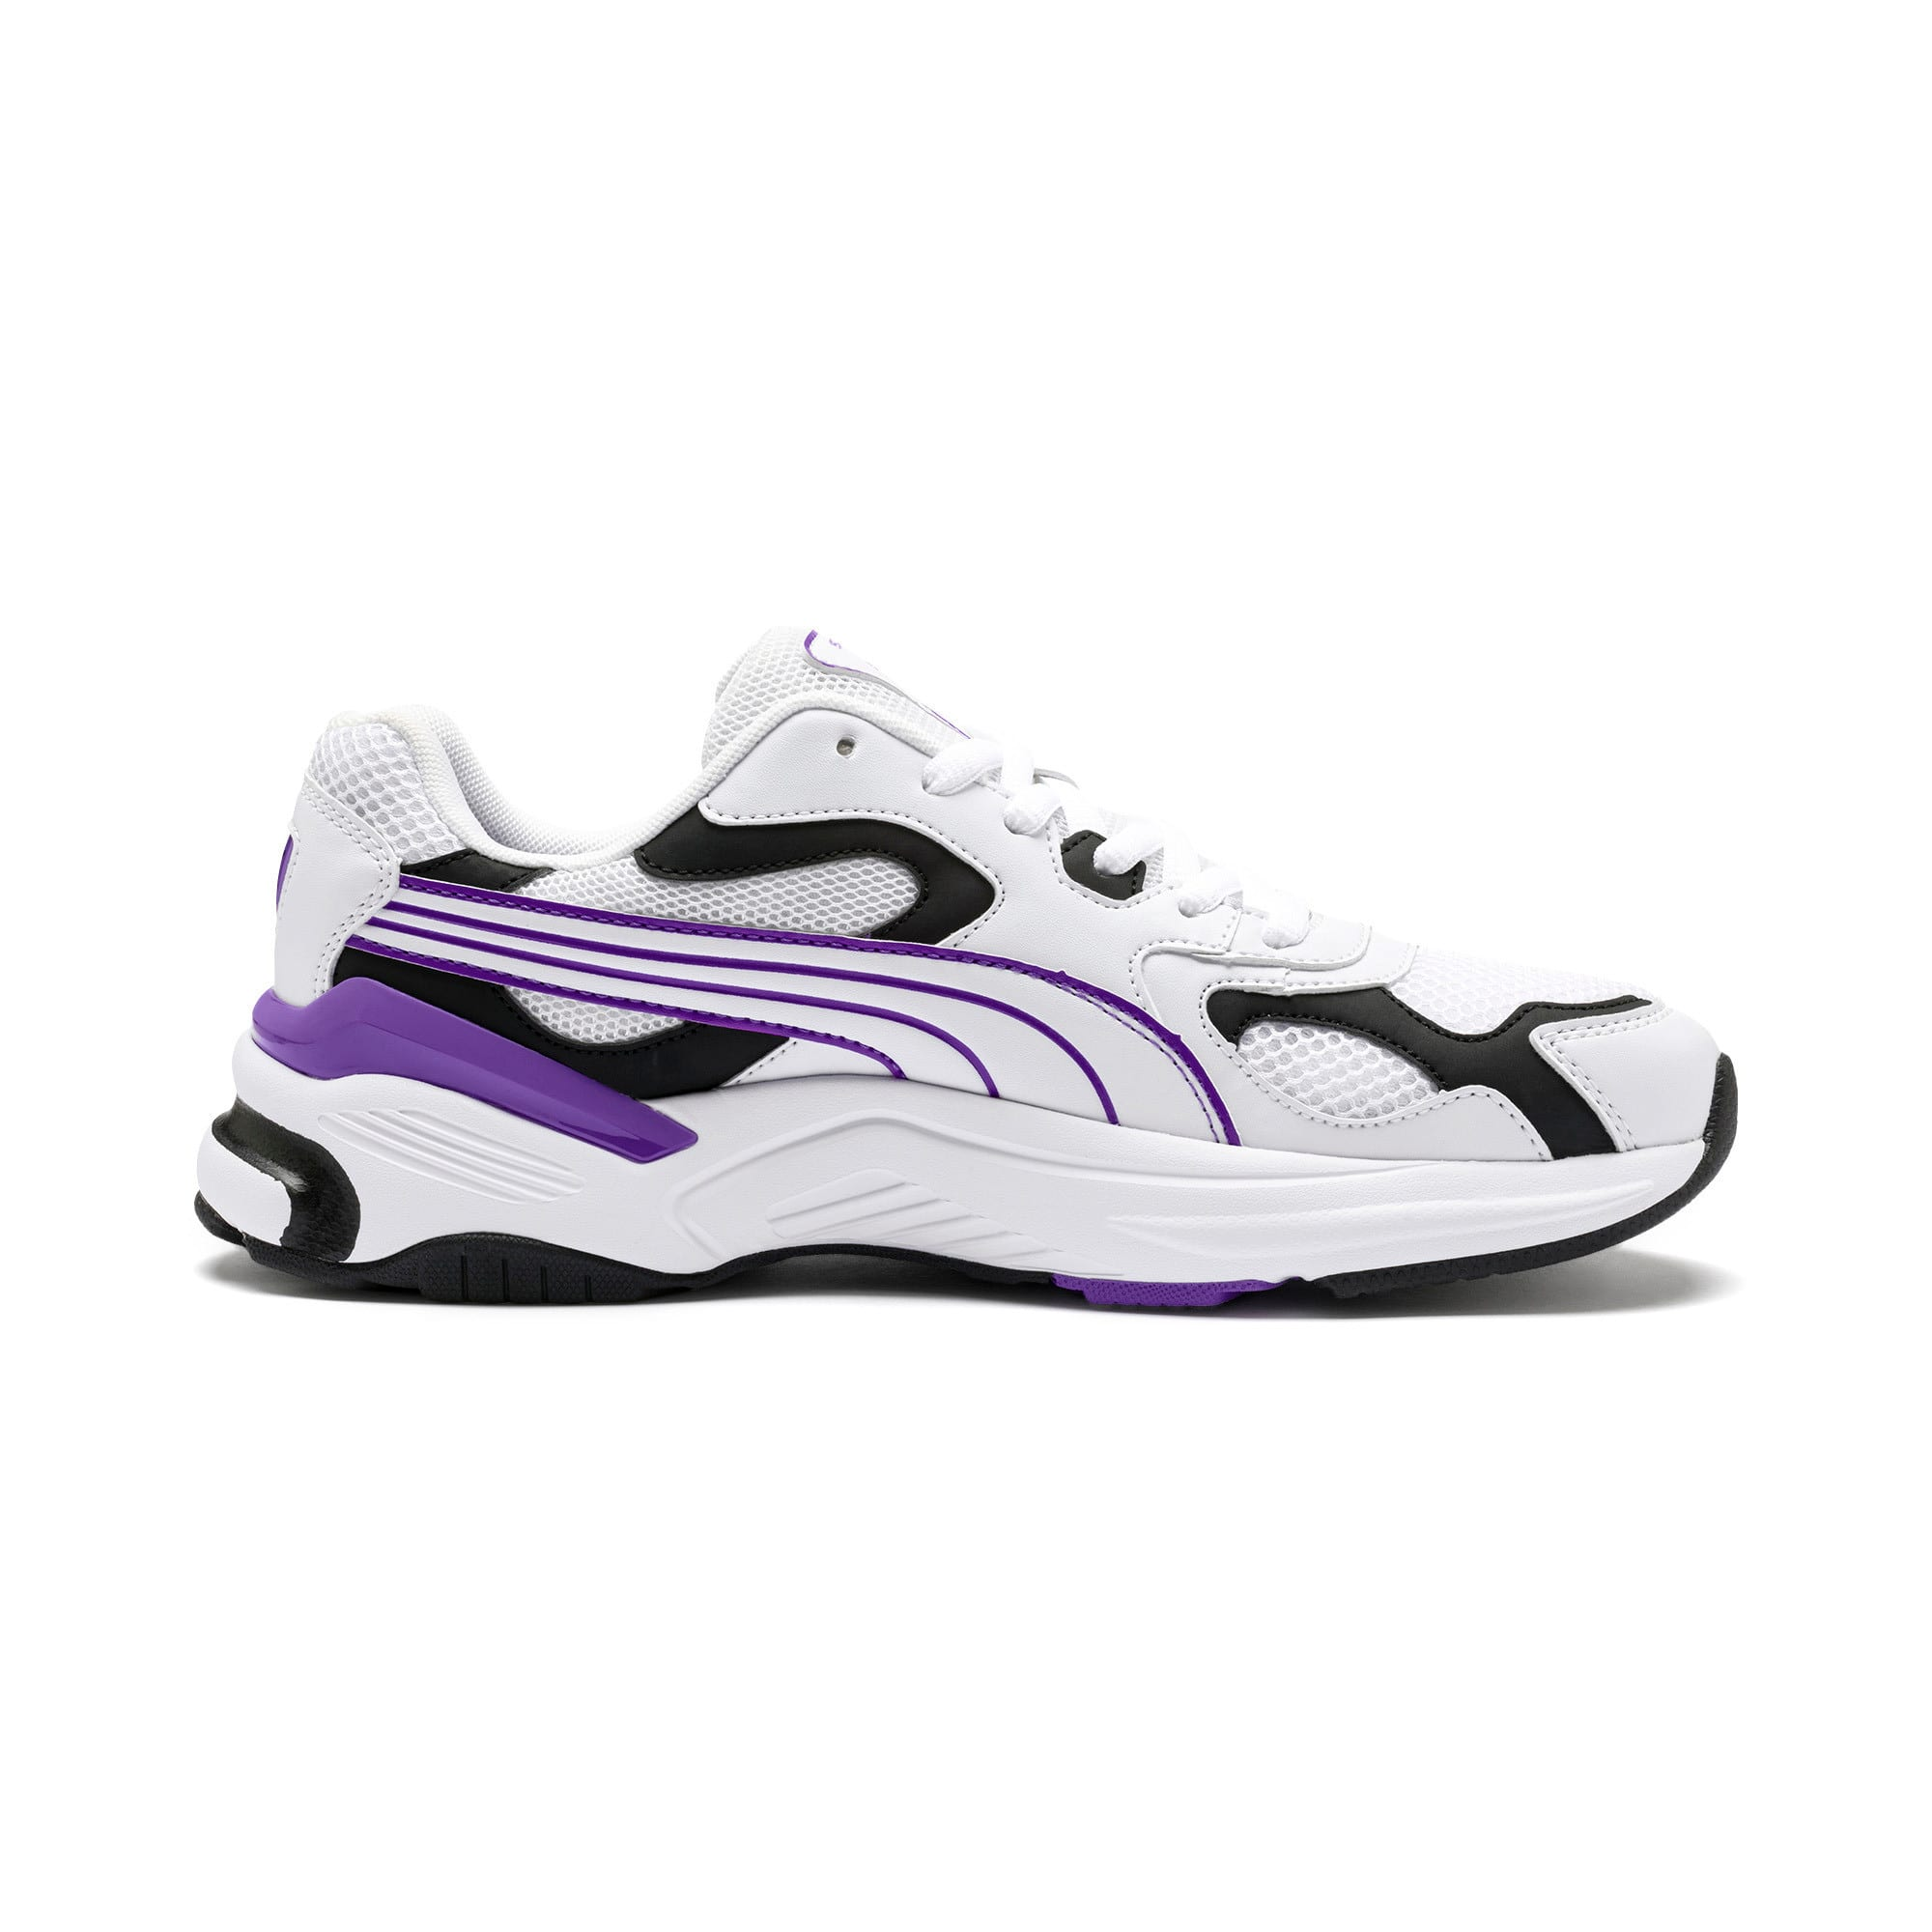 Thumbnail 7 of Axis SUPR Trainers, White-Black-Purple Glimmer, medium-IND